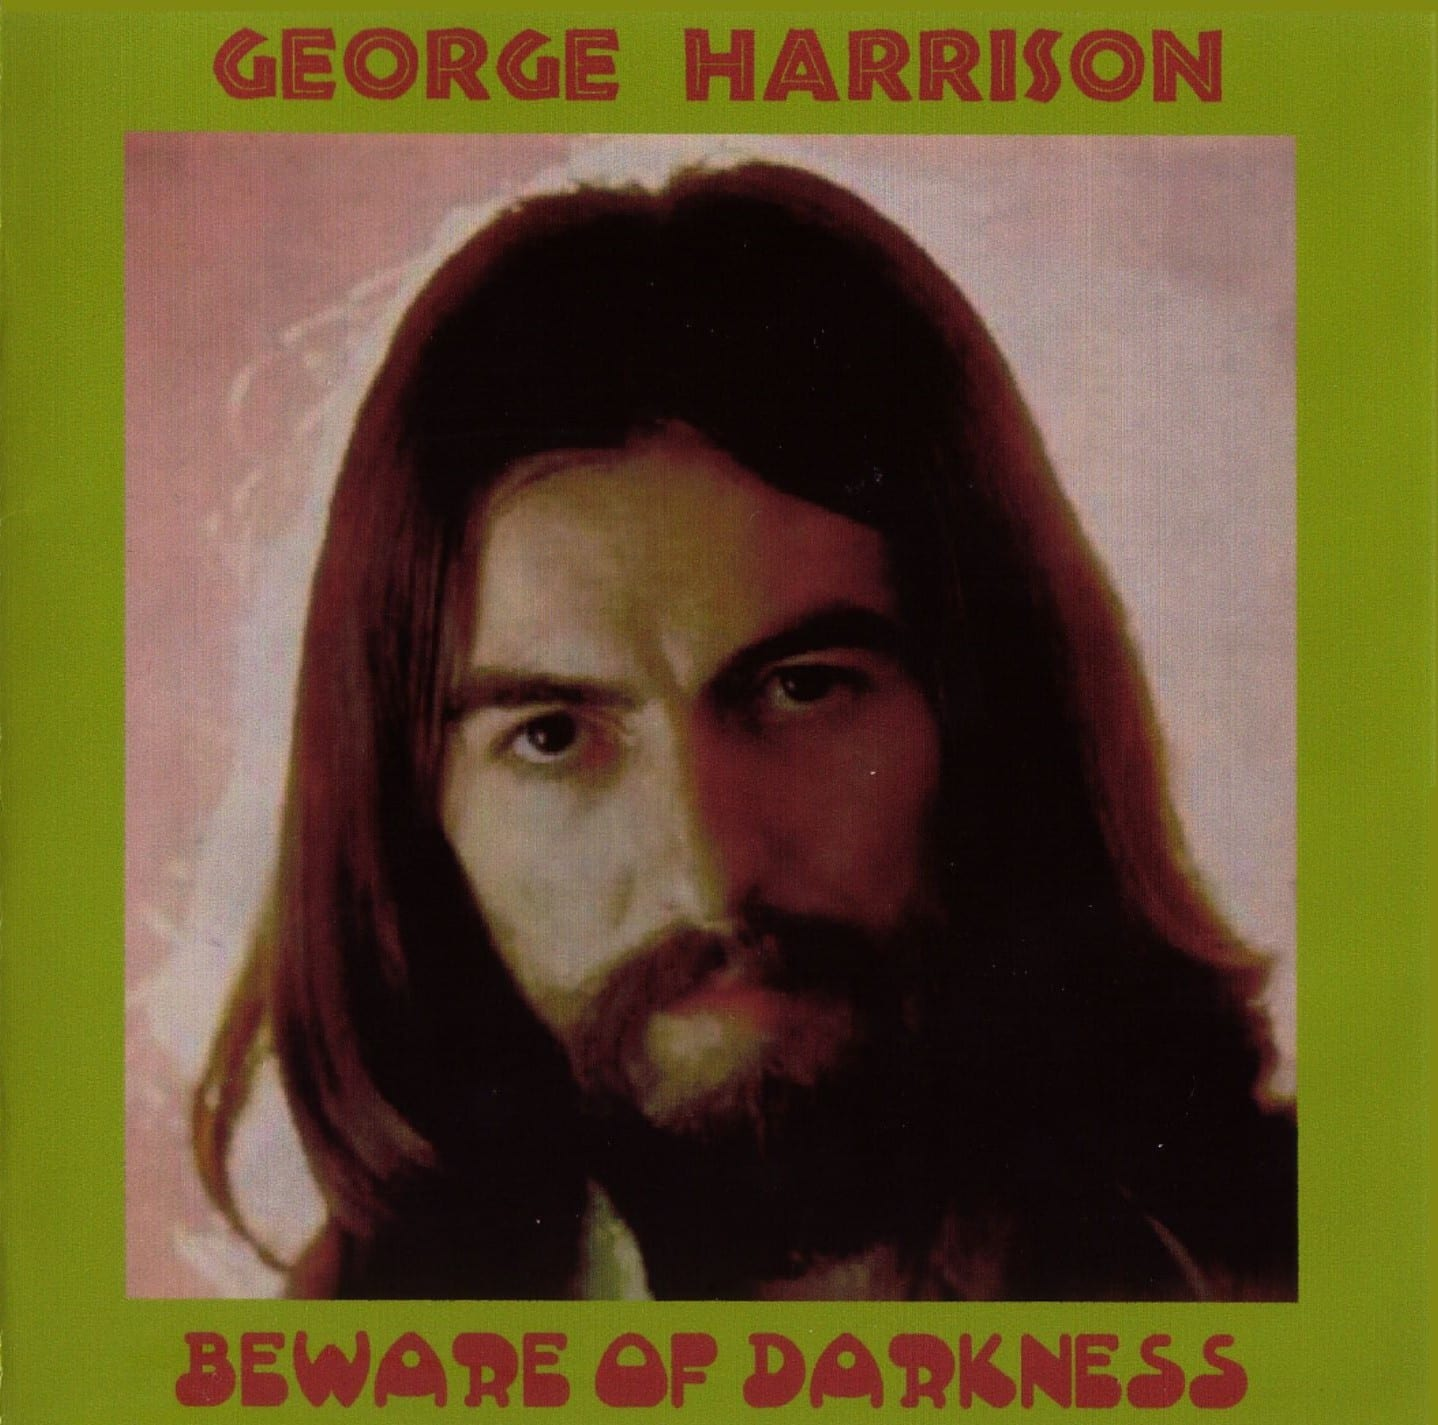 George Harrison - Here Comes The Piggies (Rarities) CD 8